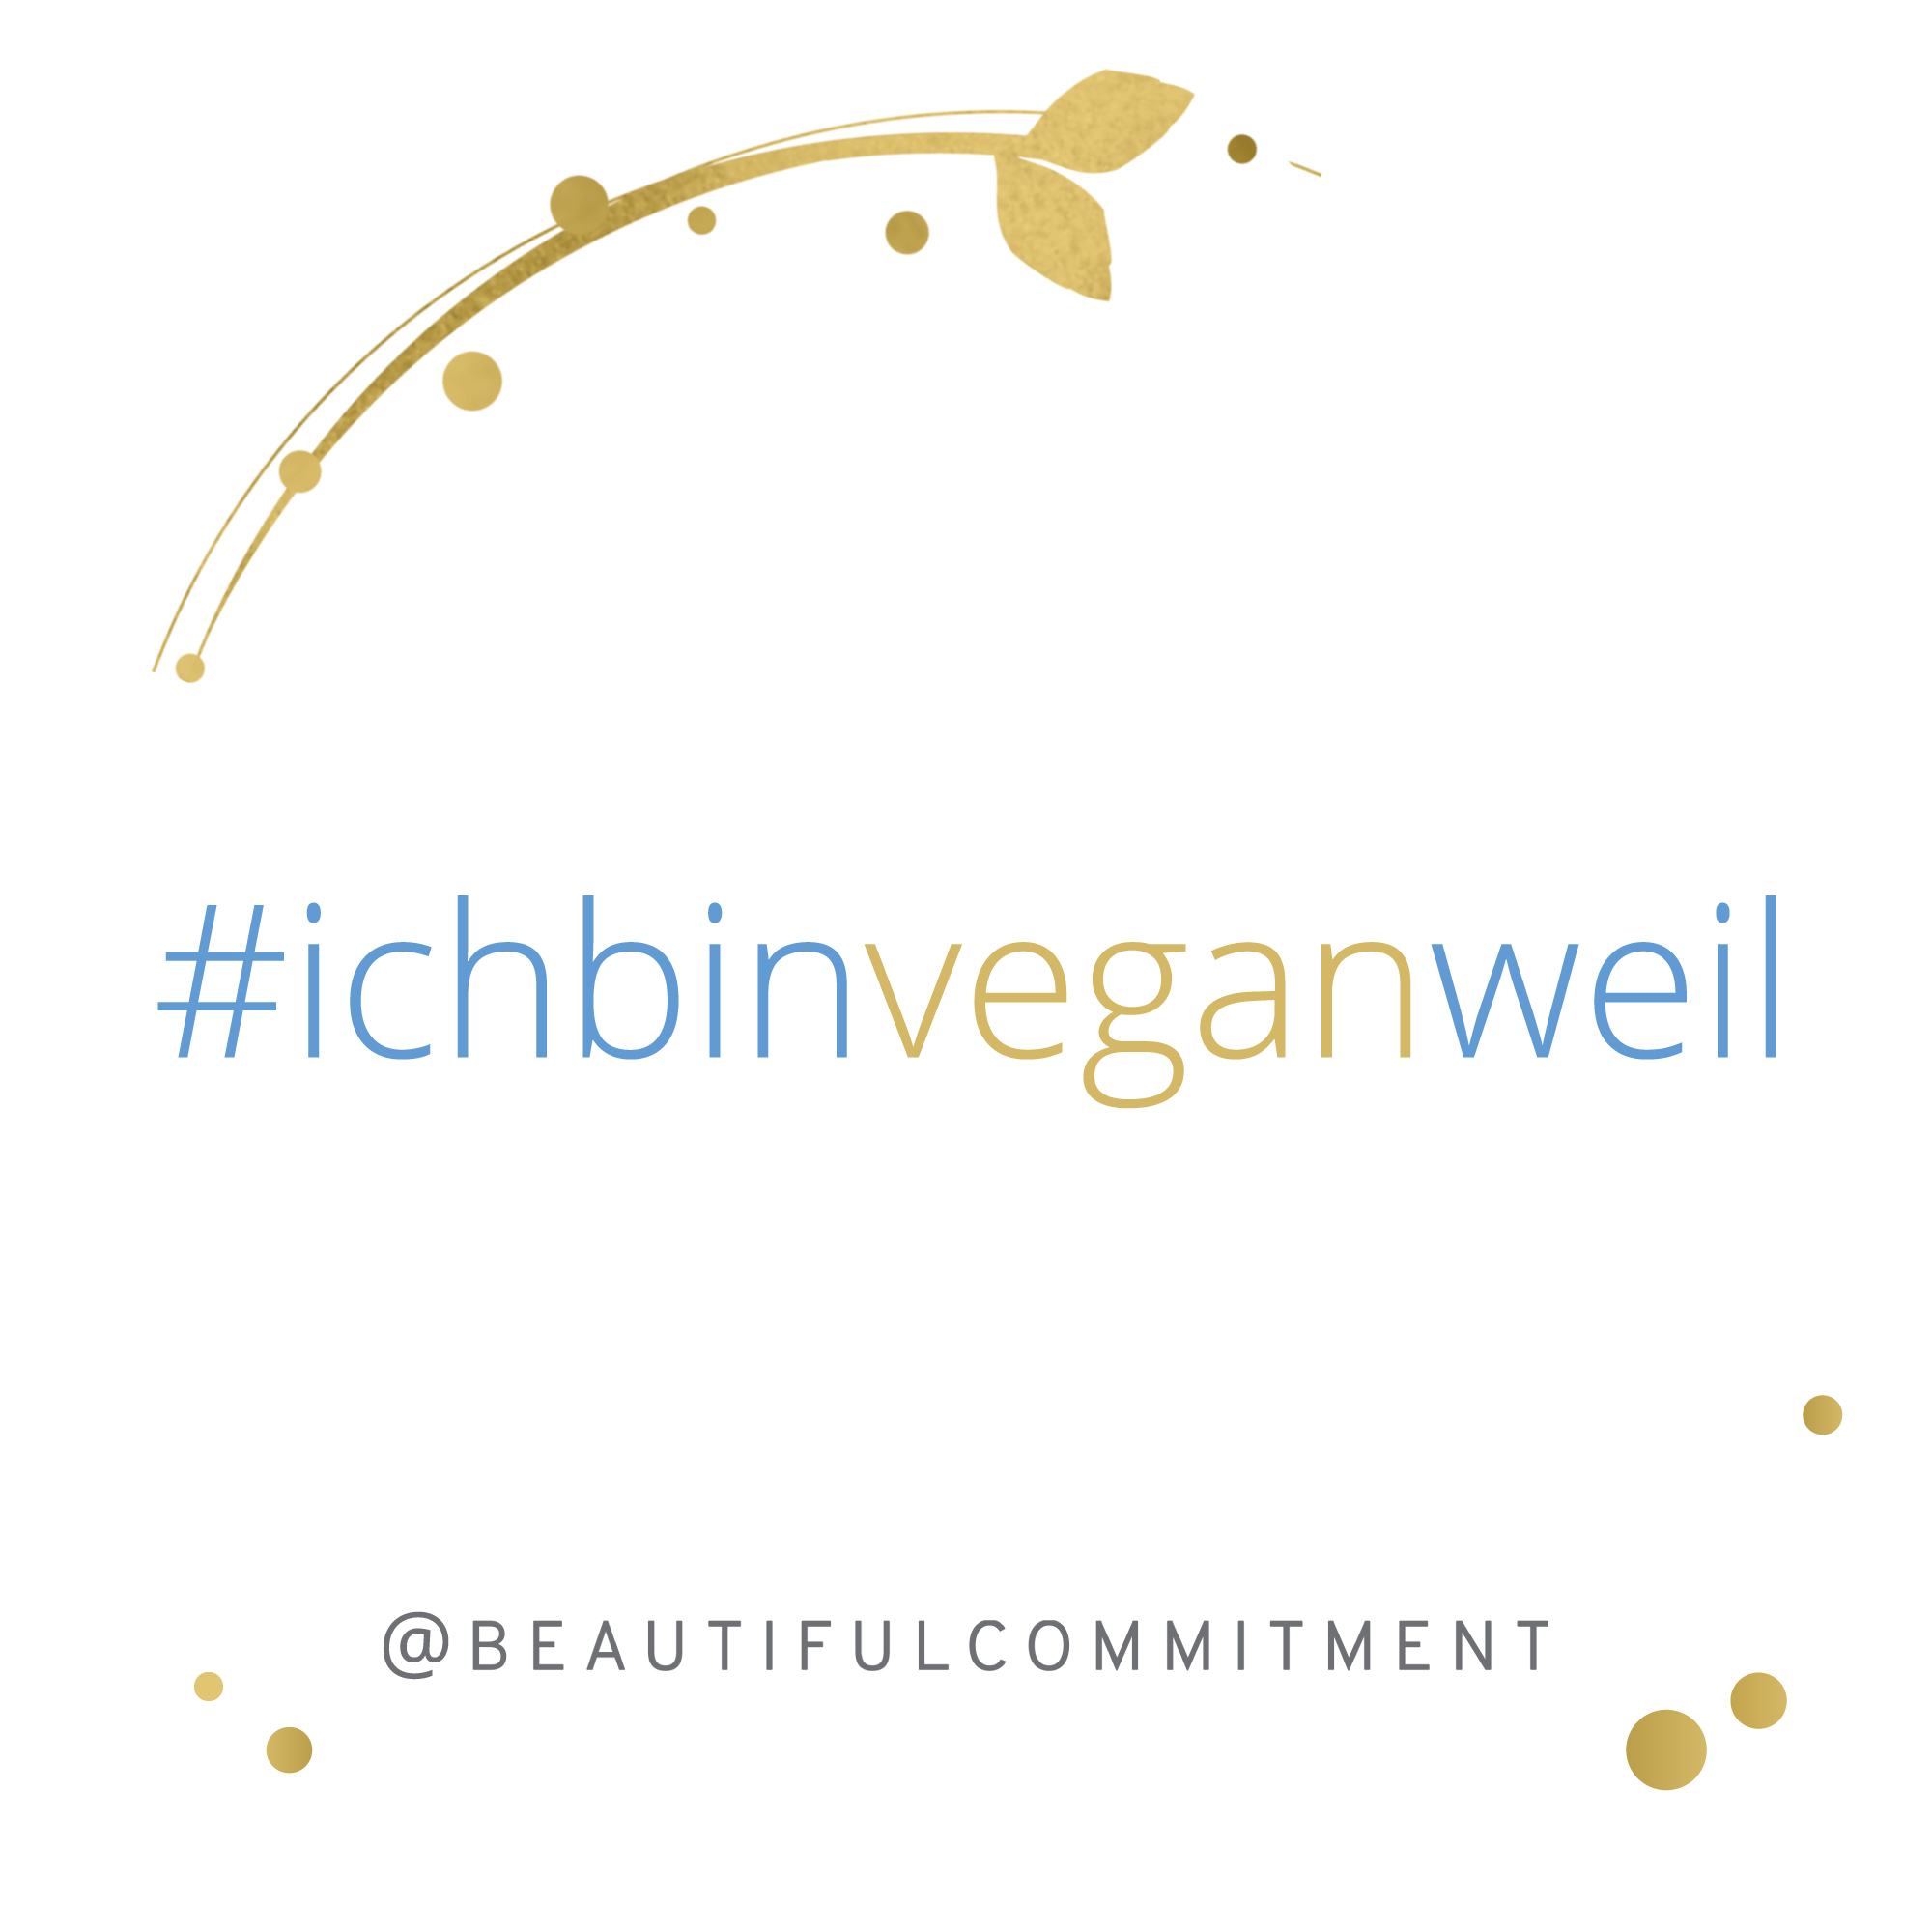 BeautifulCommitment ichbinveganweil Instagram Post